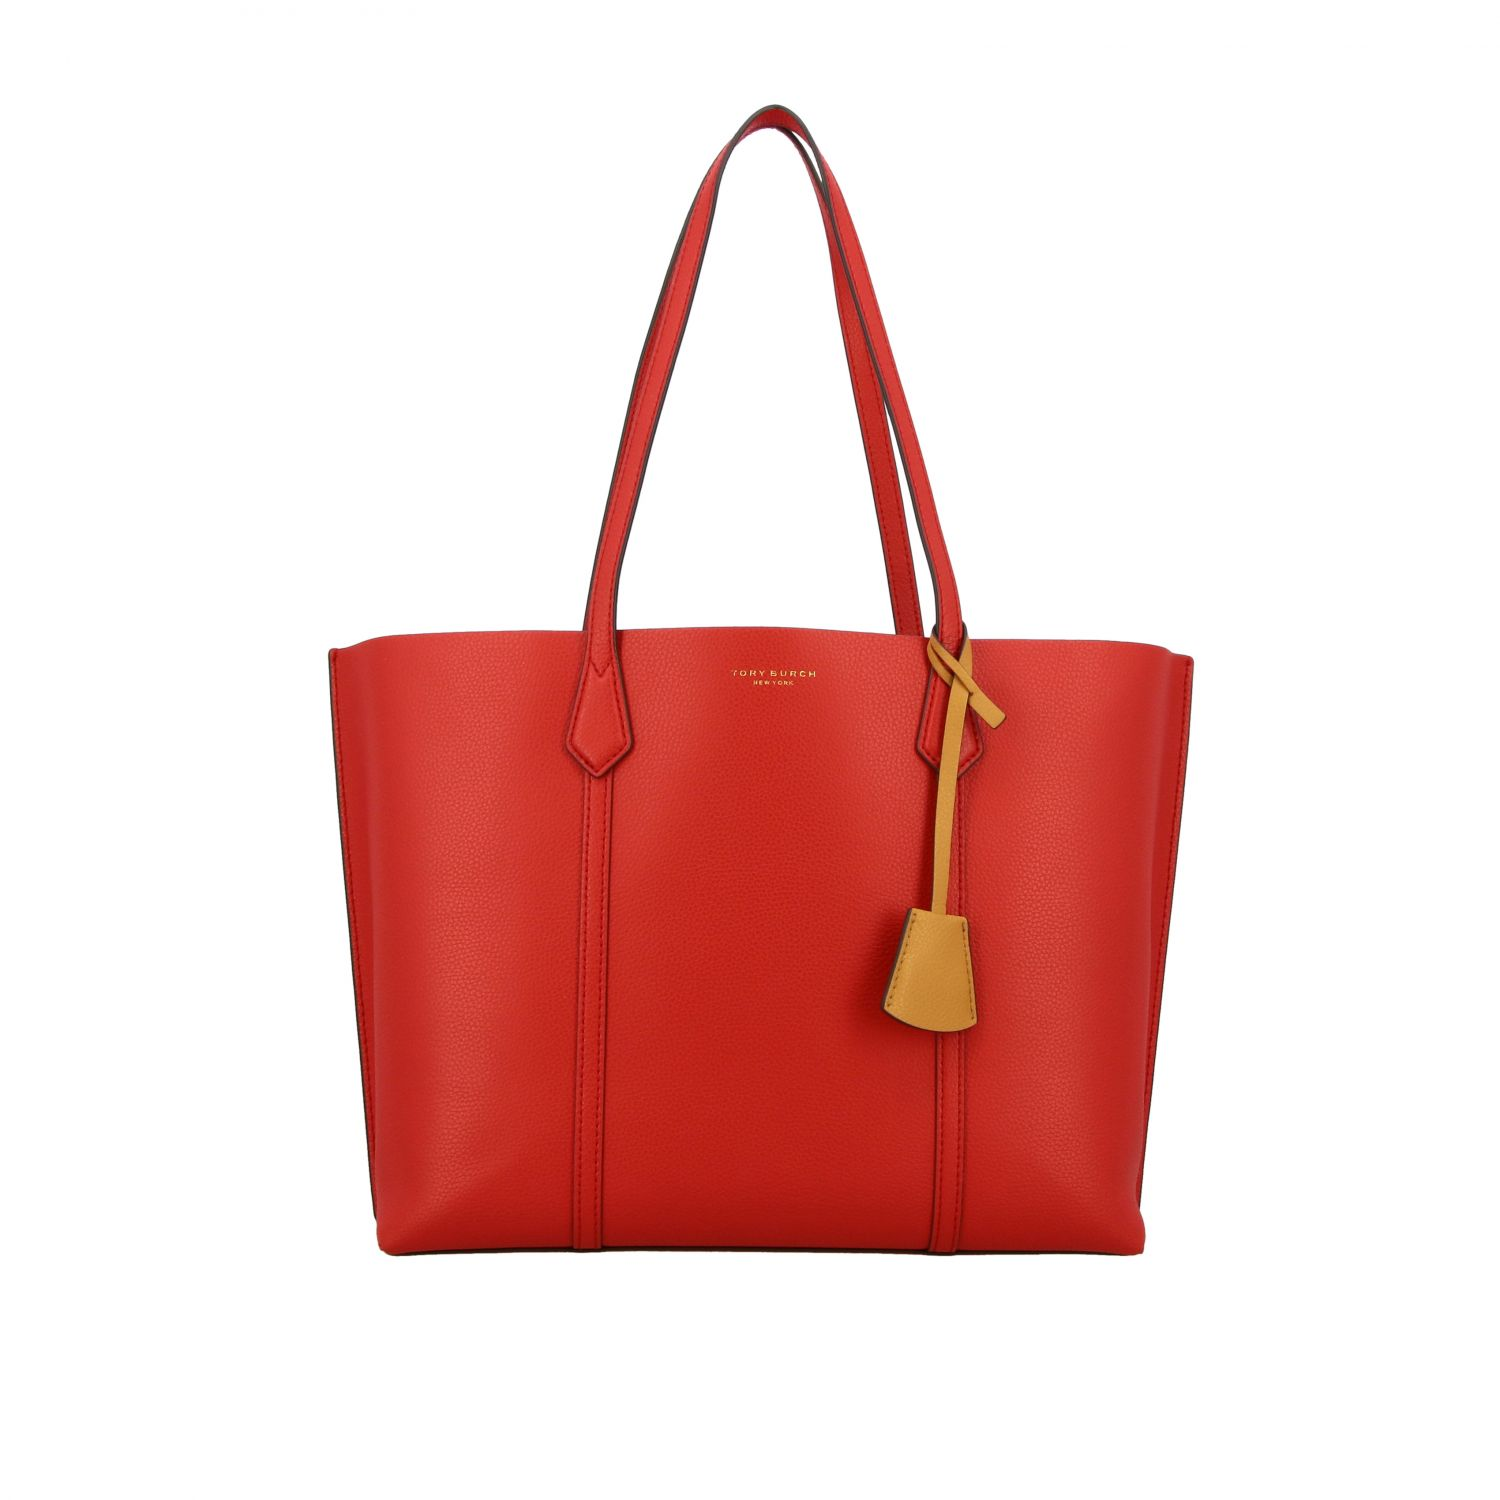 Perry Tory Burch tote bag in textured leather red 1